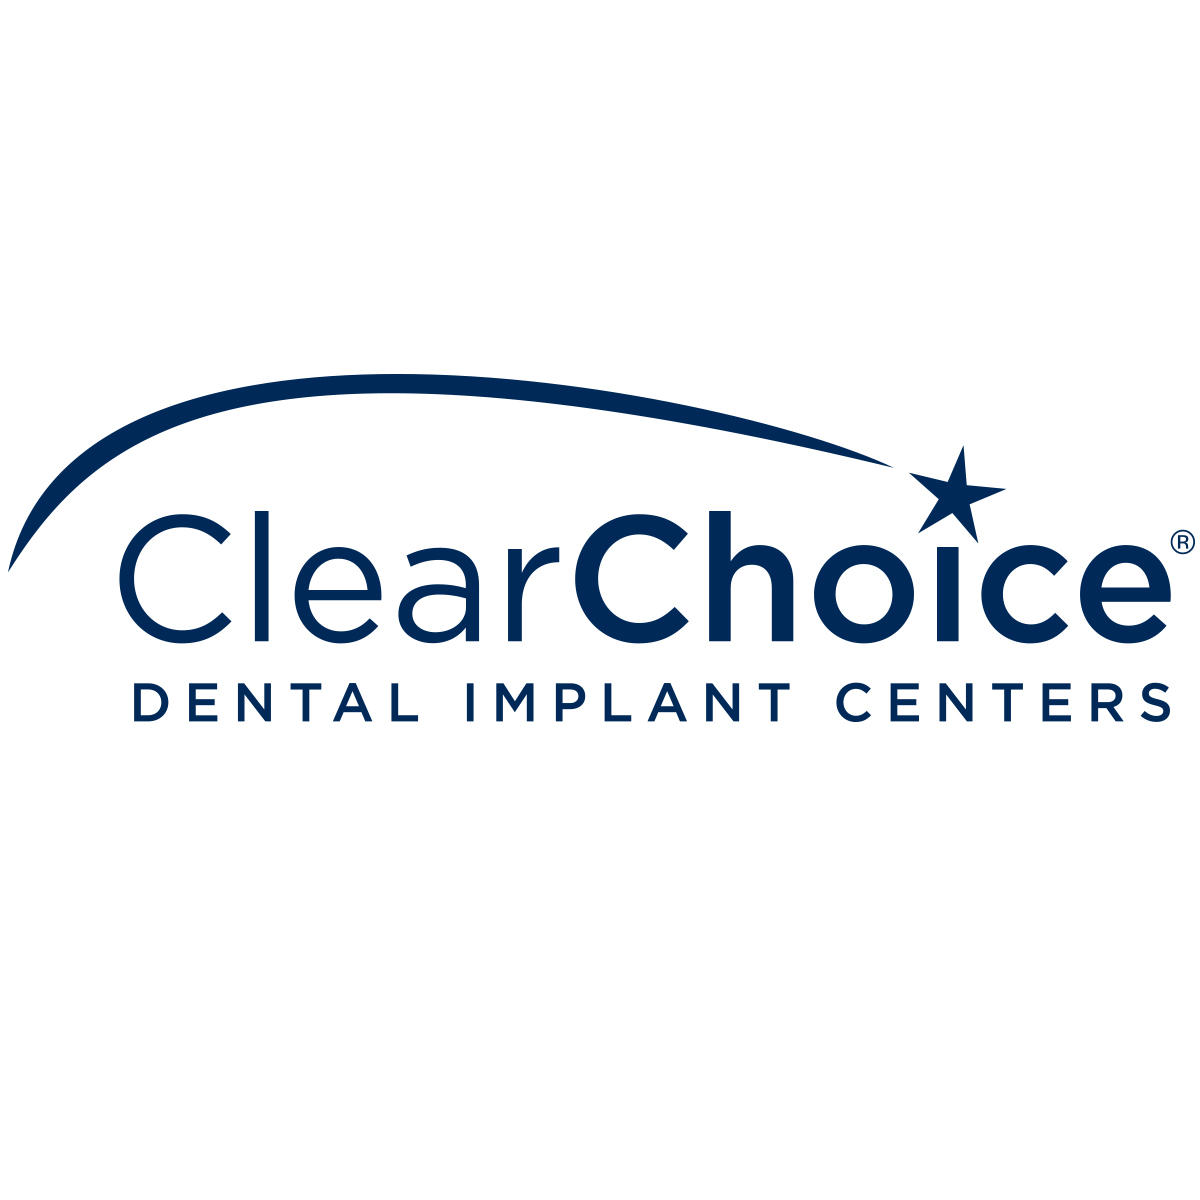 ClearChoice Dental Implant Center image 7